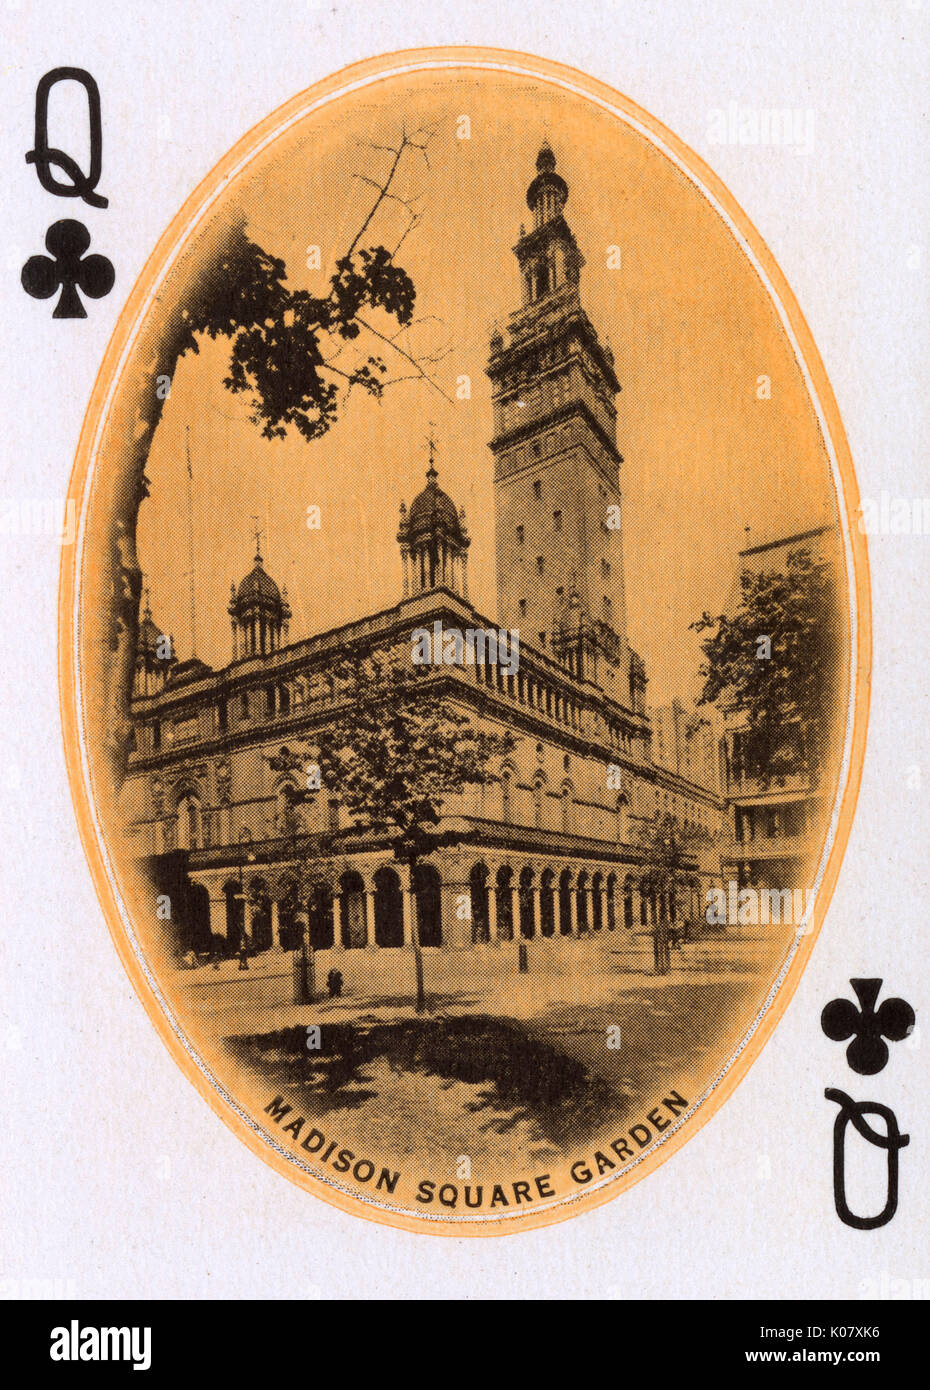 New York City - Playing card - Madison Square Garden - Queen of ...